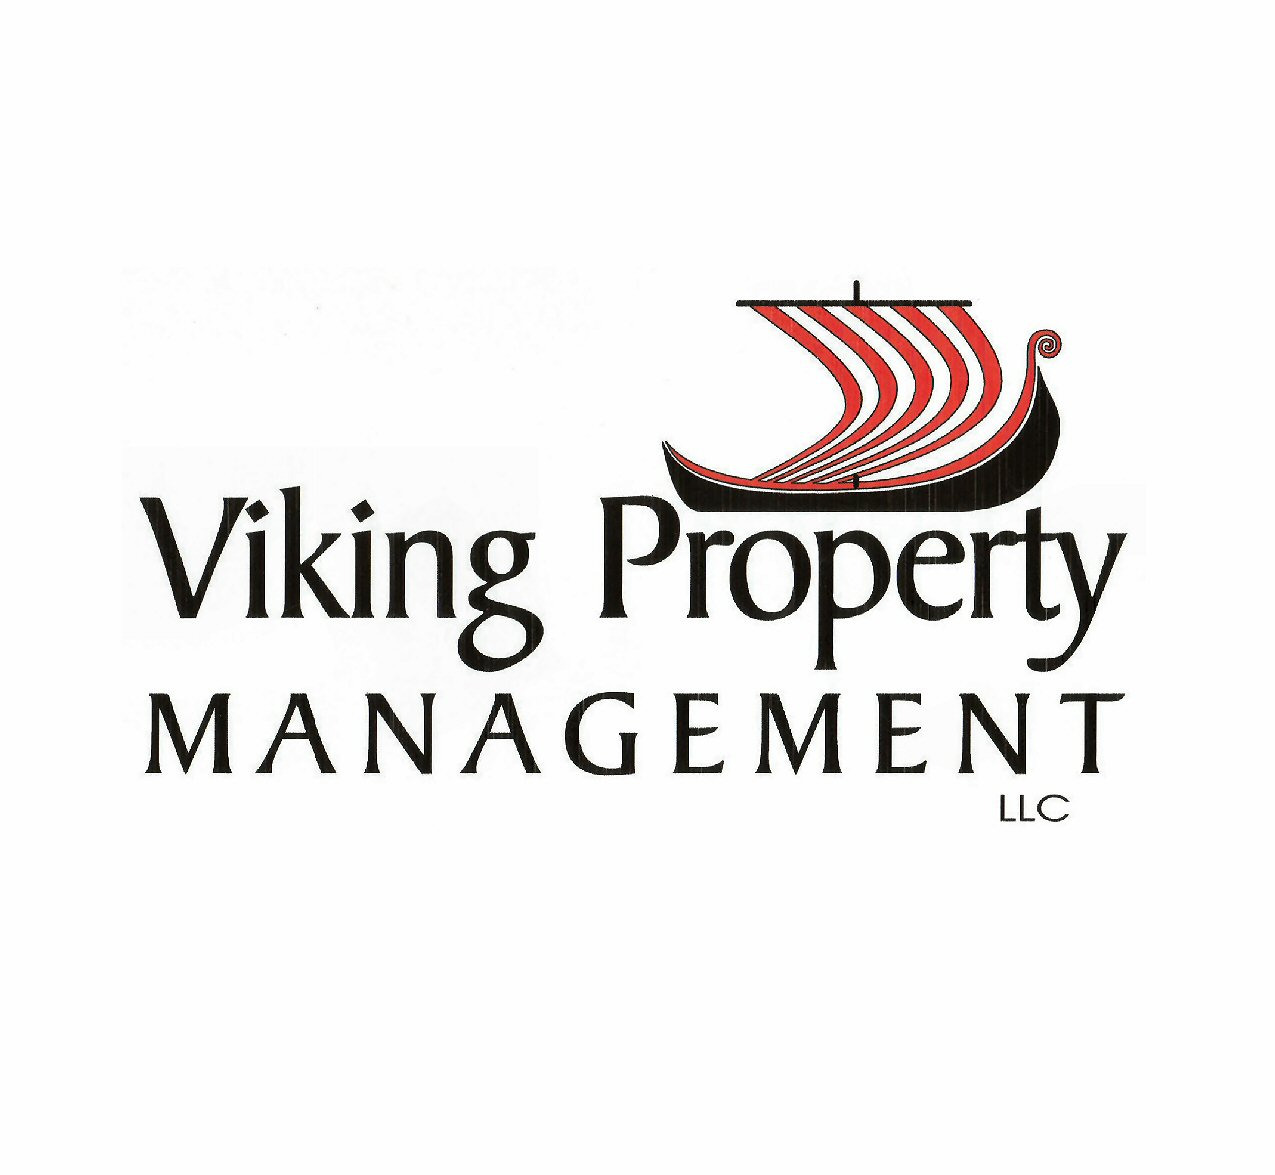 Prineville Viking Property Management LLC